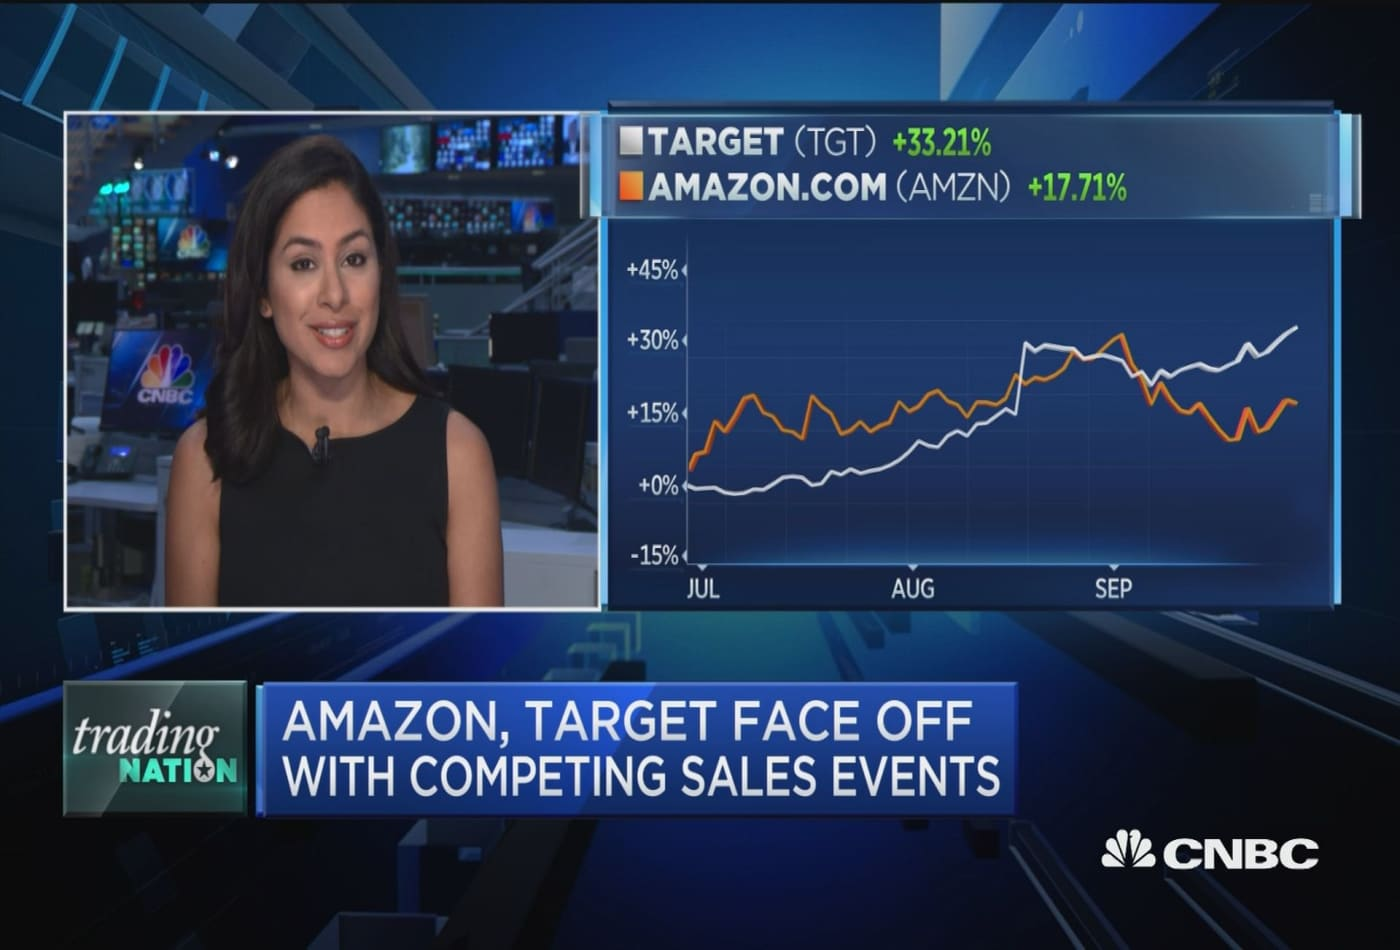 Trading Nation: Amazon and Target hold sales on the same day — Two experts on who will win